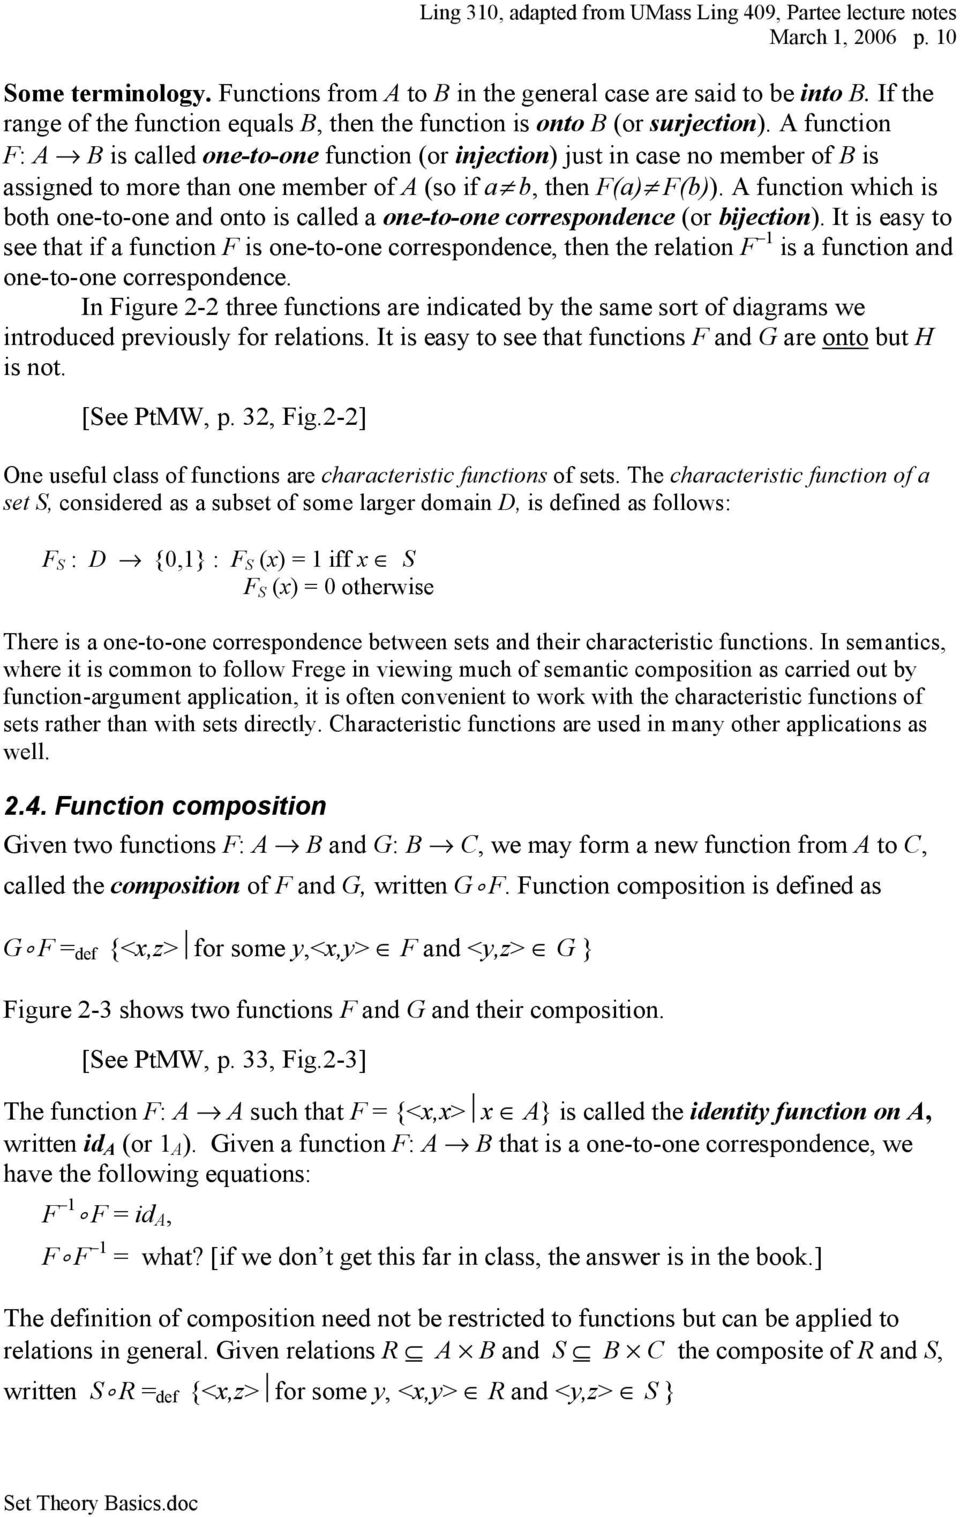 Basic Concepts of Set Theory, Functions and Relations - PDF